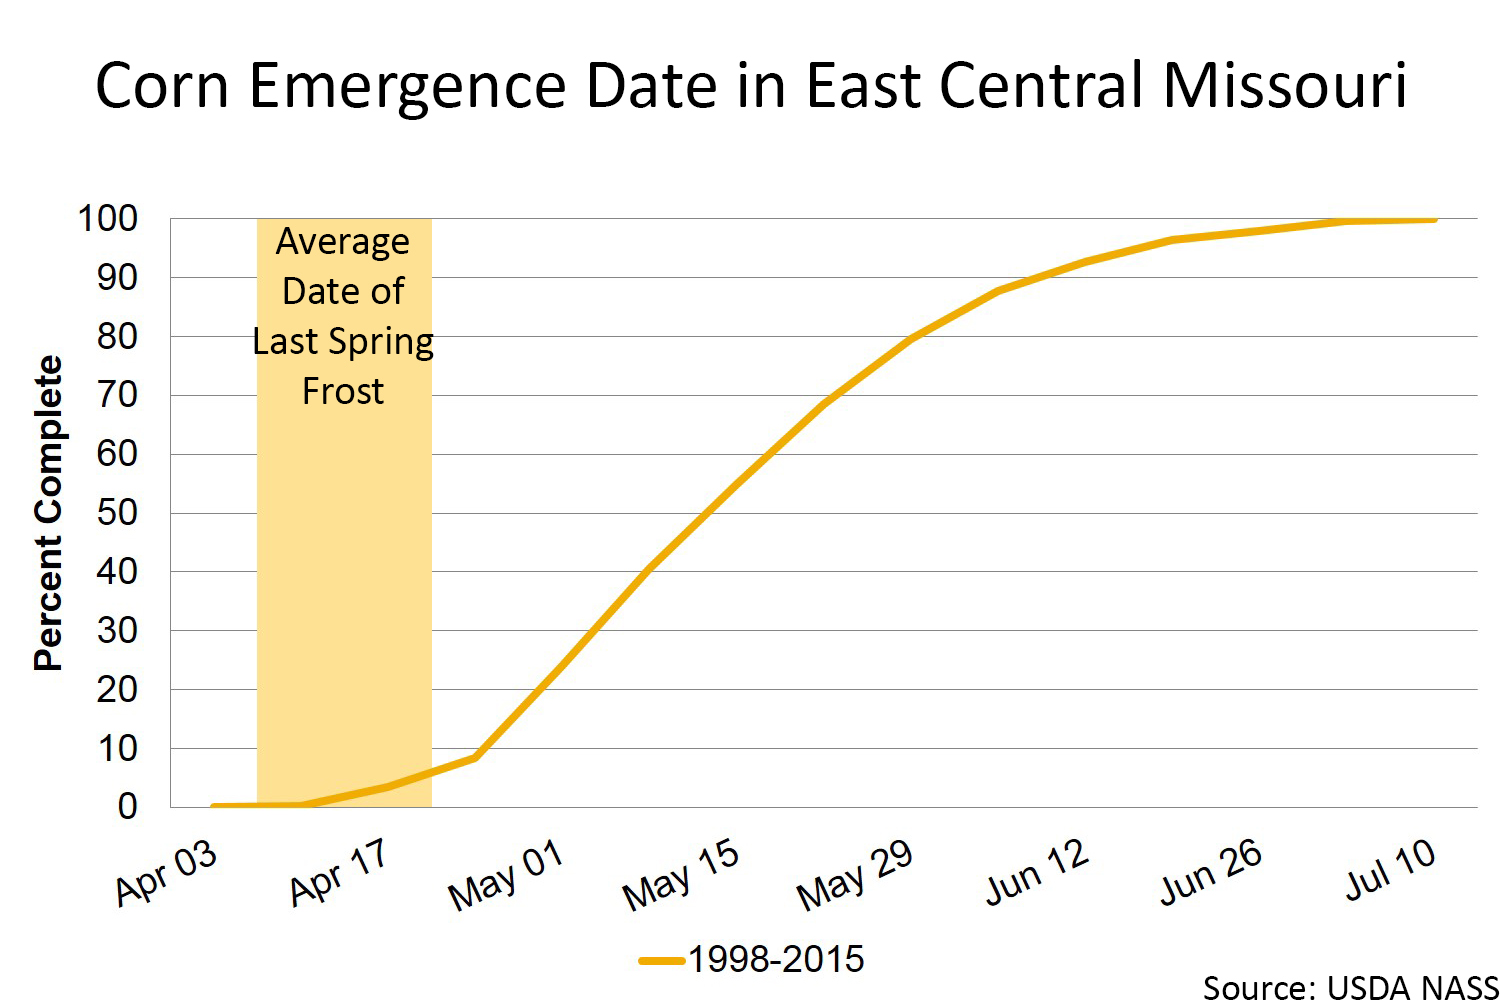 Corn emergence date in east central Missouri chart